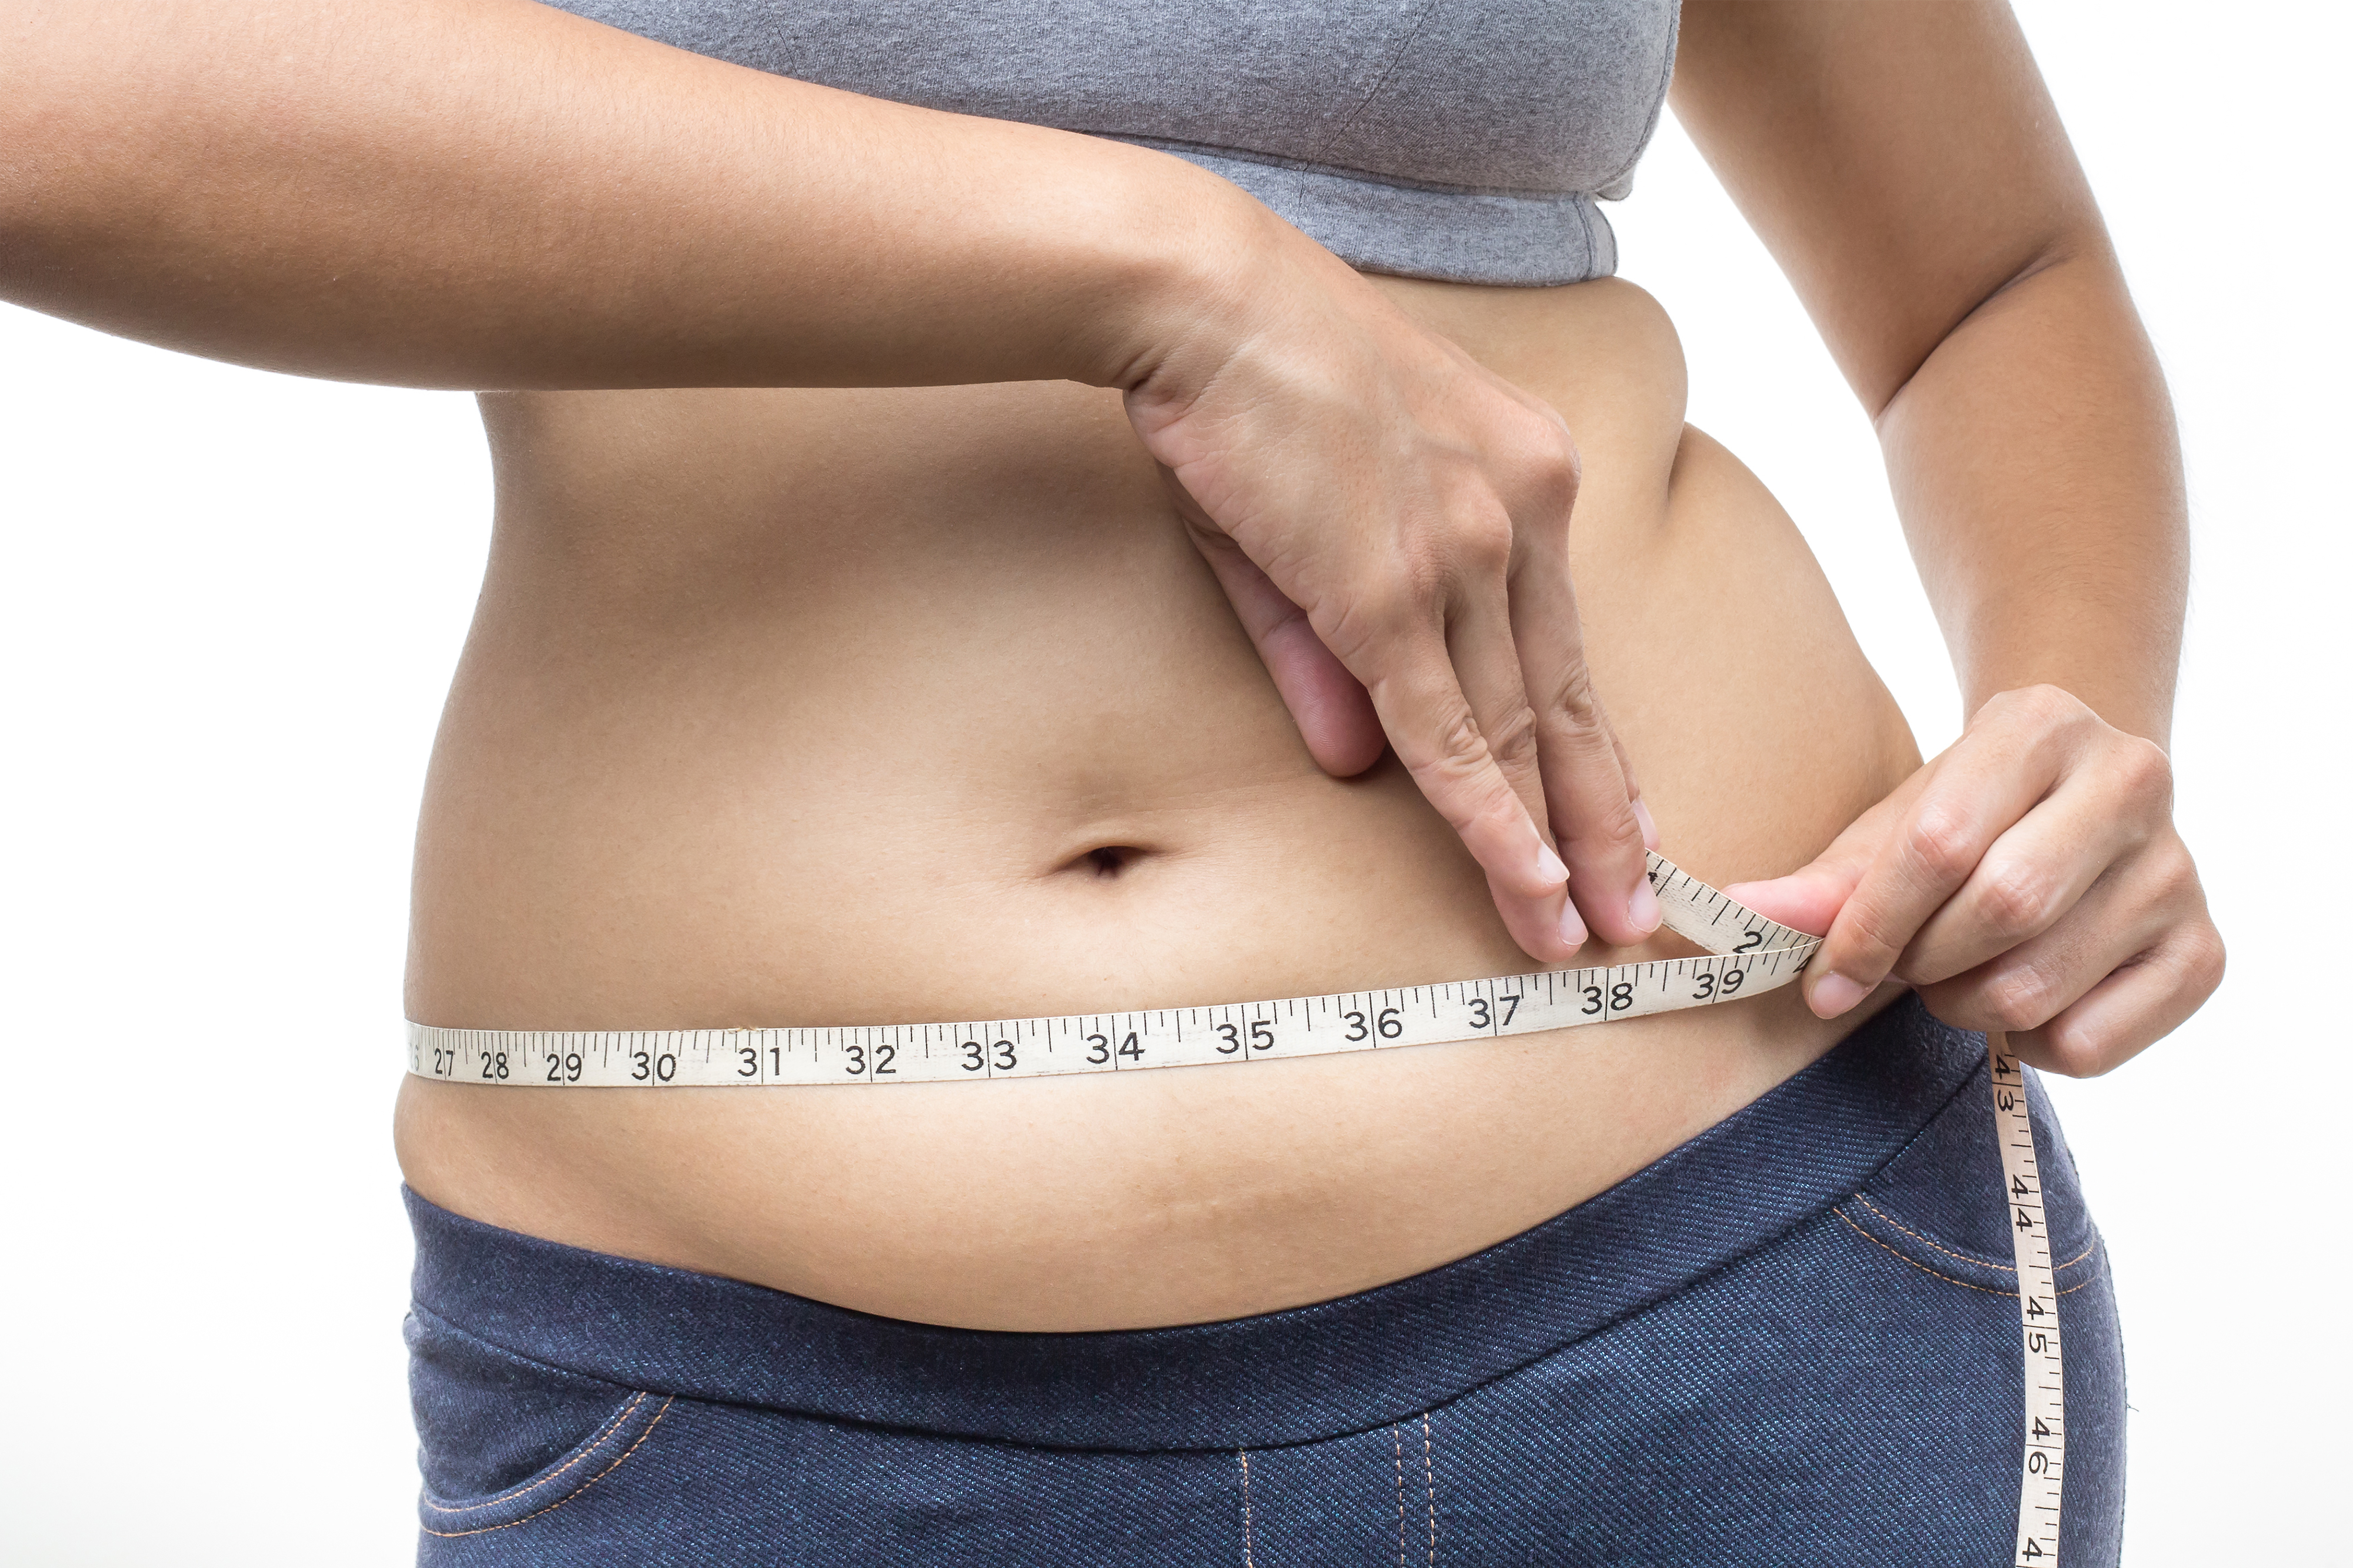 Does Insulin Resistance Always Make You Gain Weight?